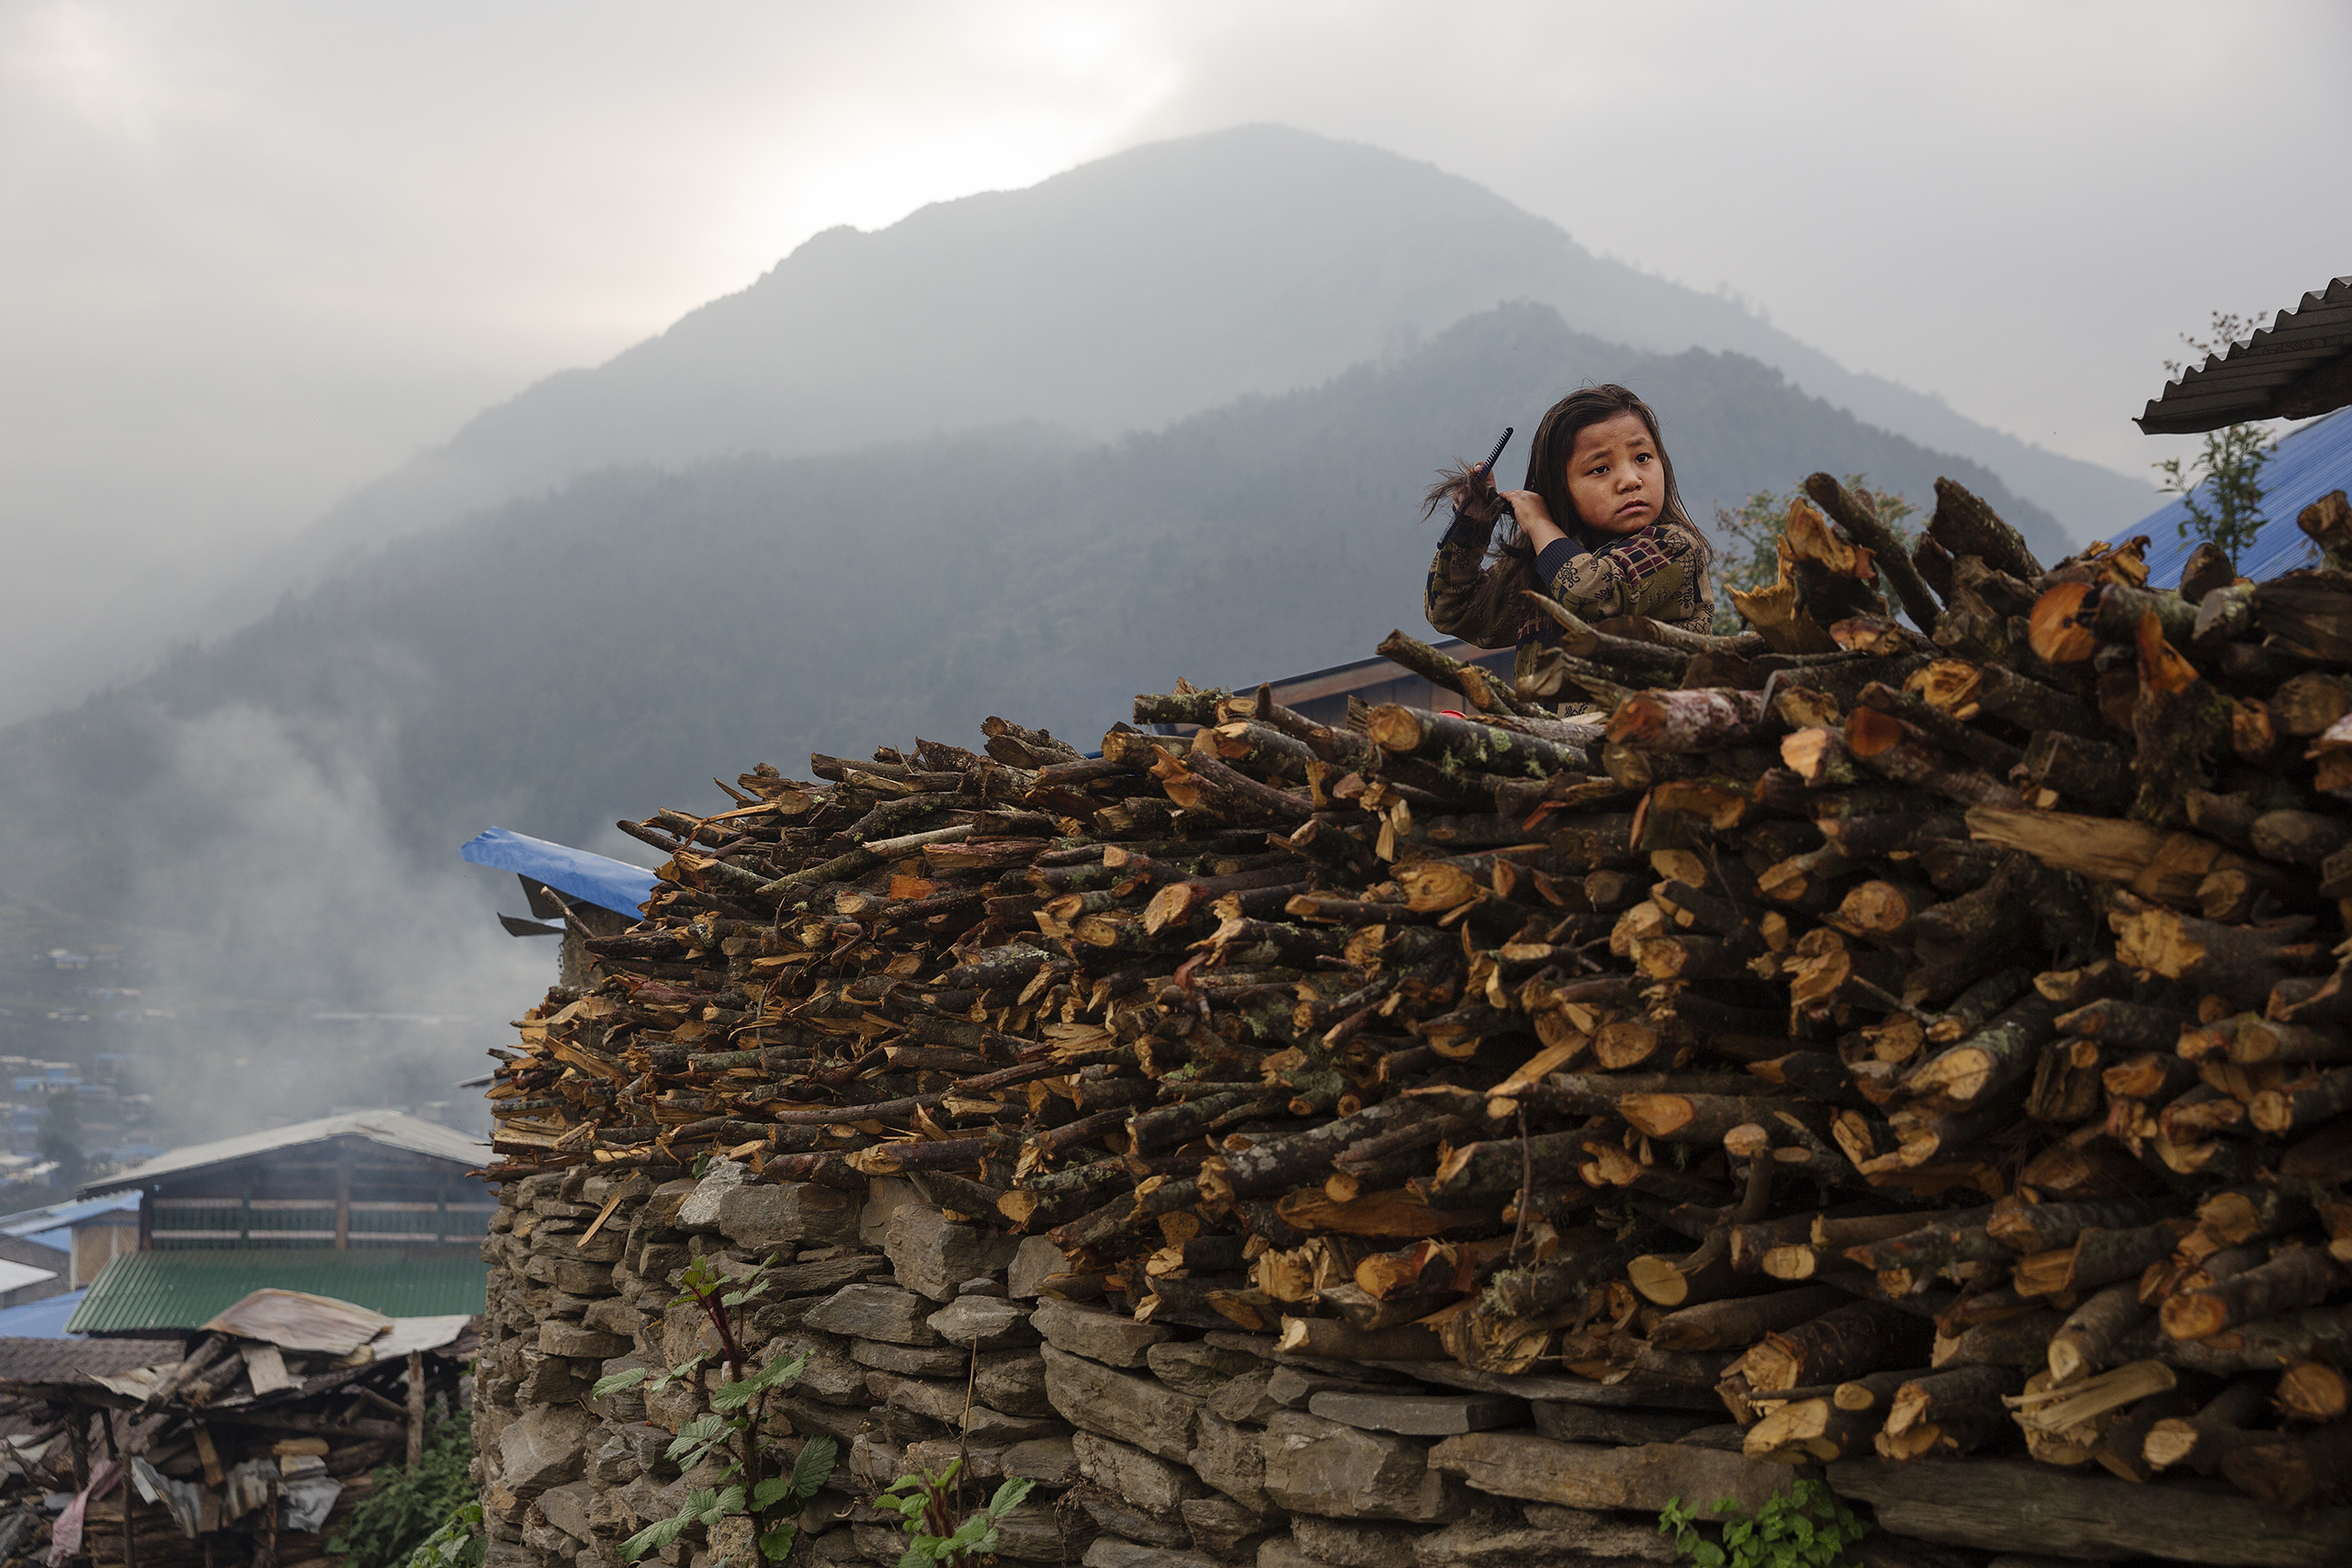 A child combs her hair in the devastated village of Barpak, in Gorkha district, Nepal, a year after the 2015 quakes which destroyed most of the town, April 5, 2016.